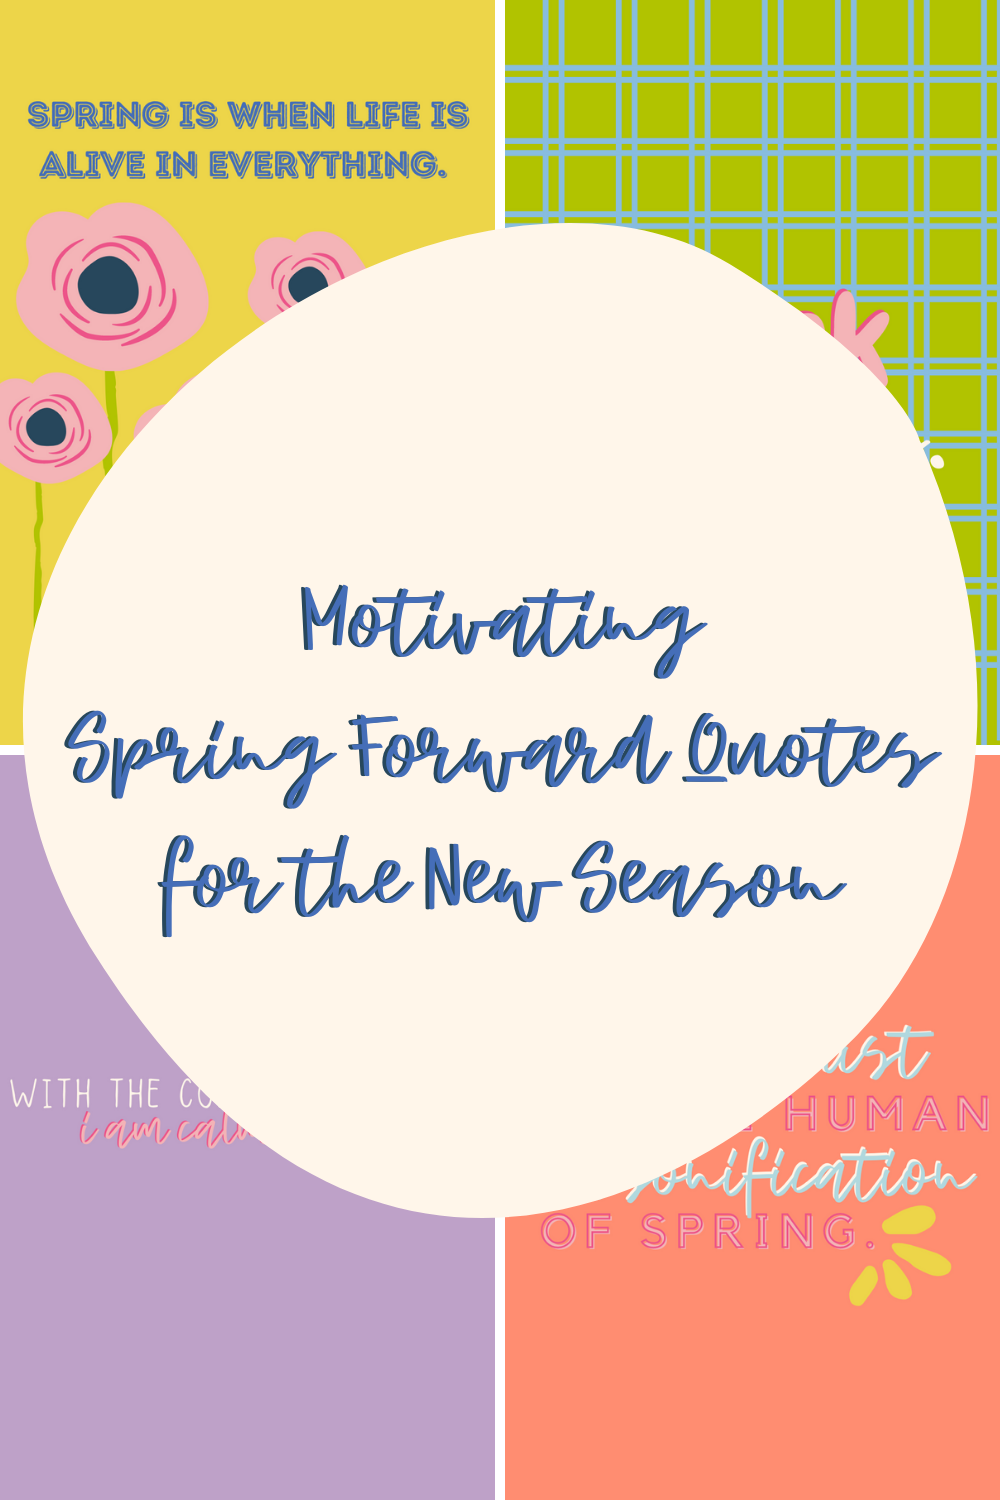 Spring Forward Quotes